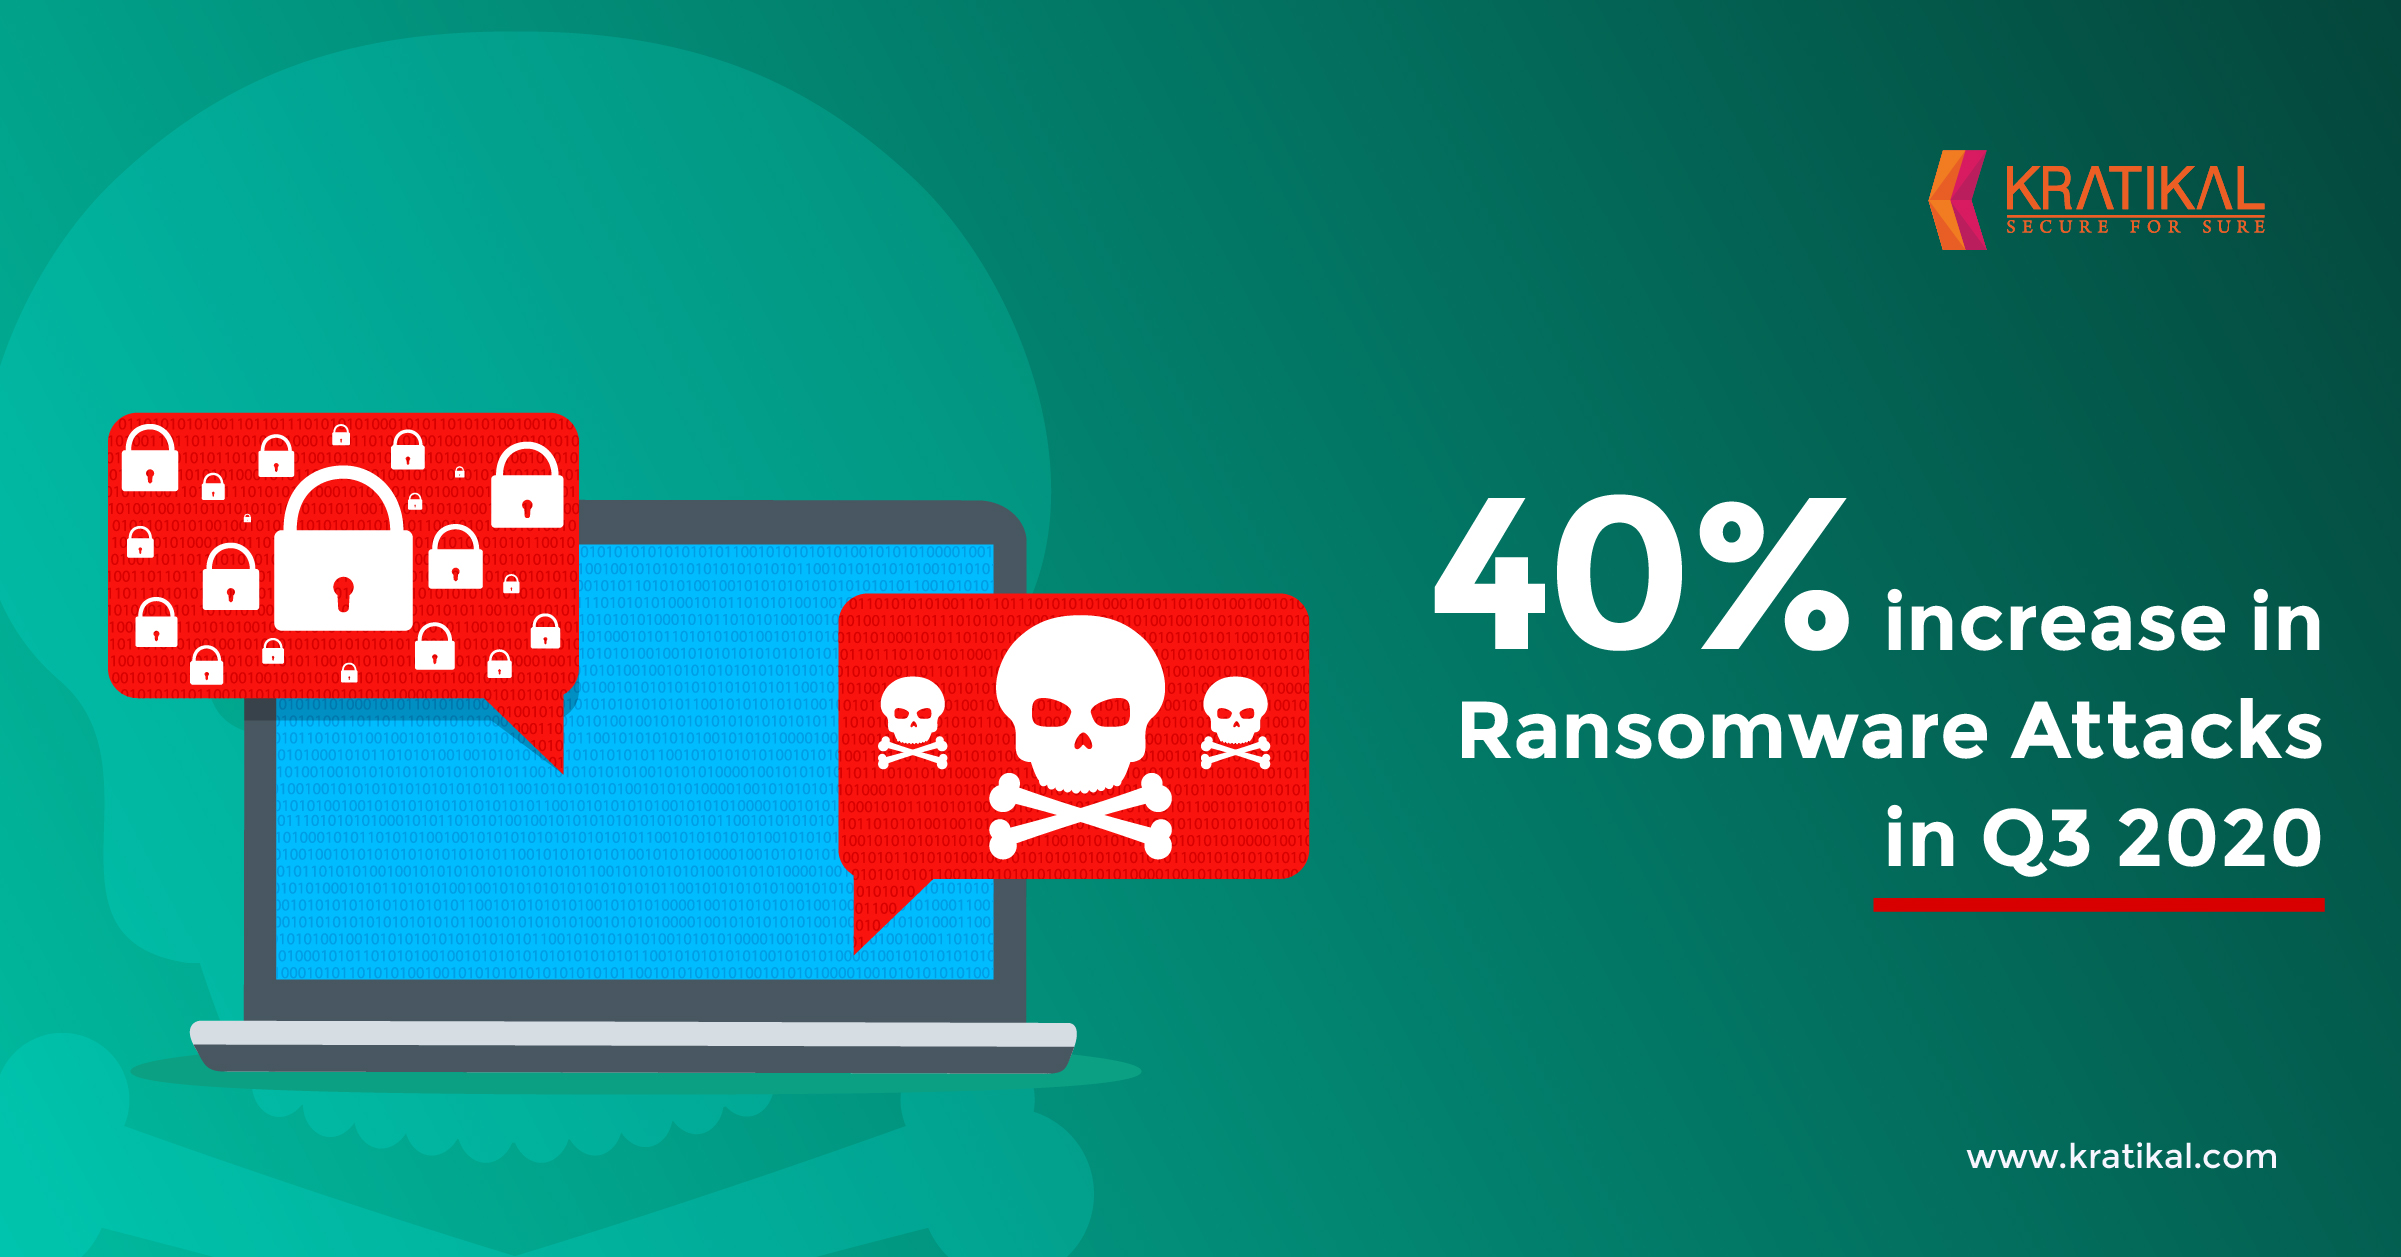 Spike in ransomware attacks in Q3 2020